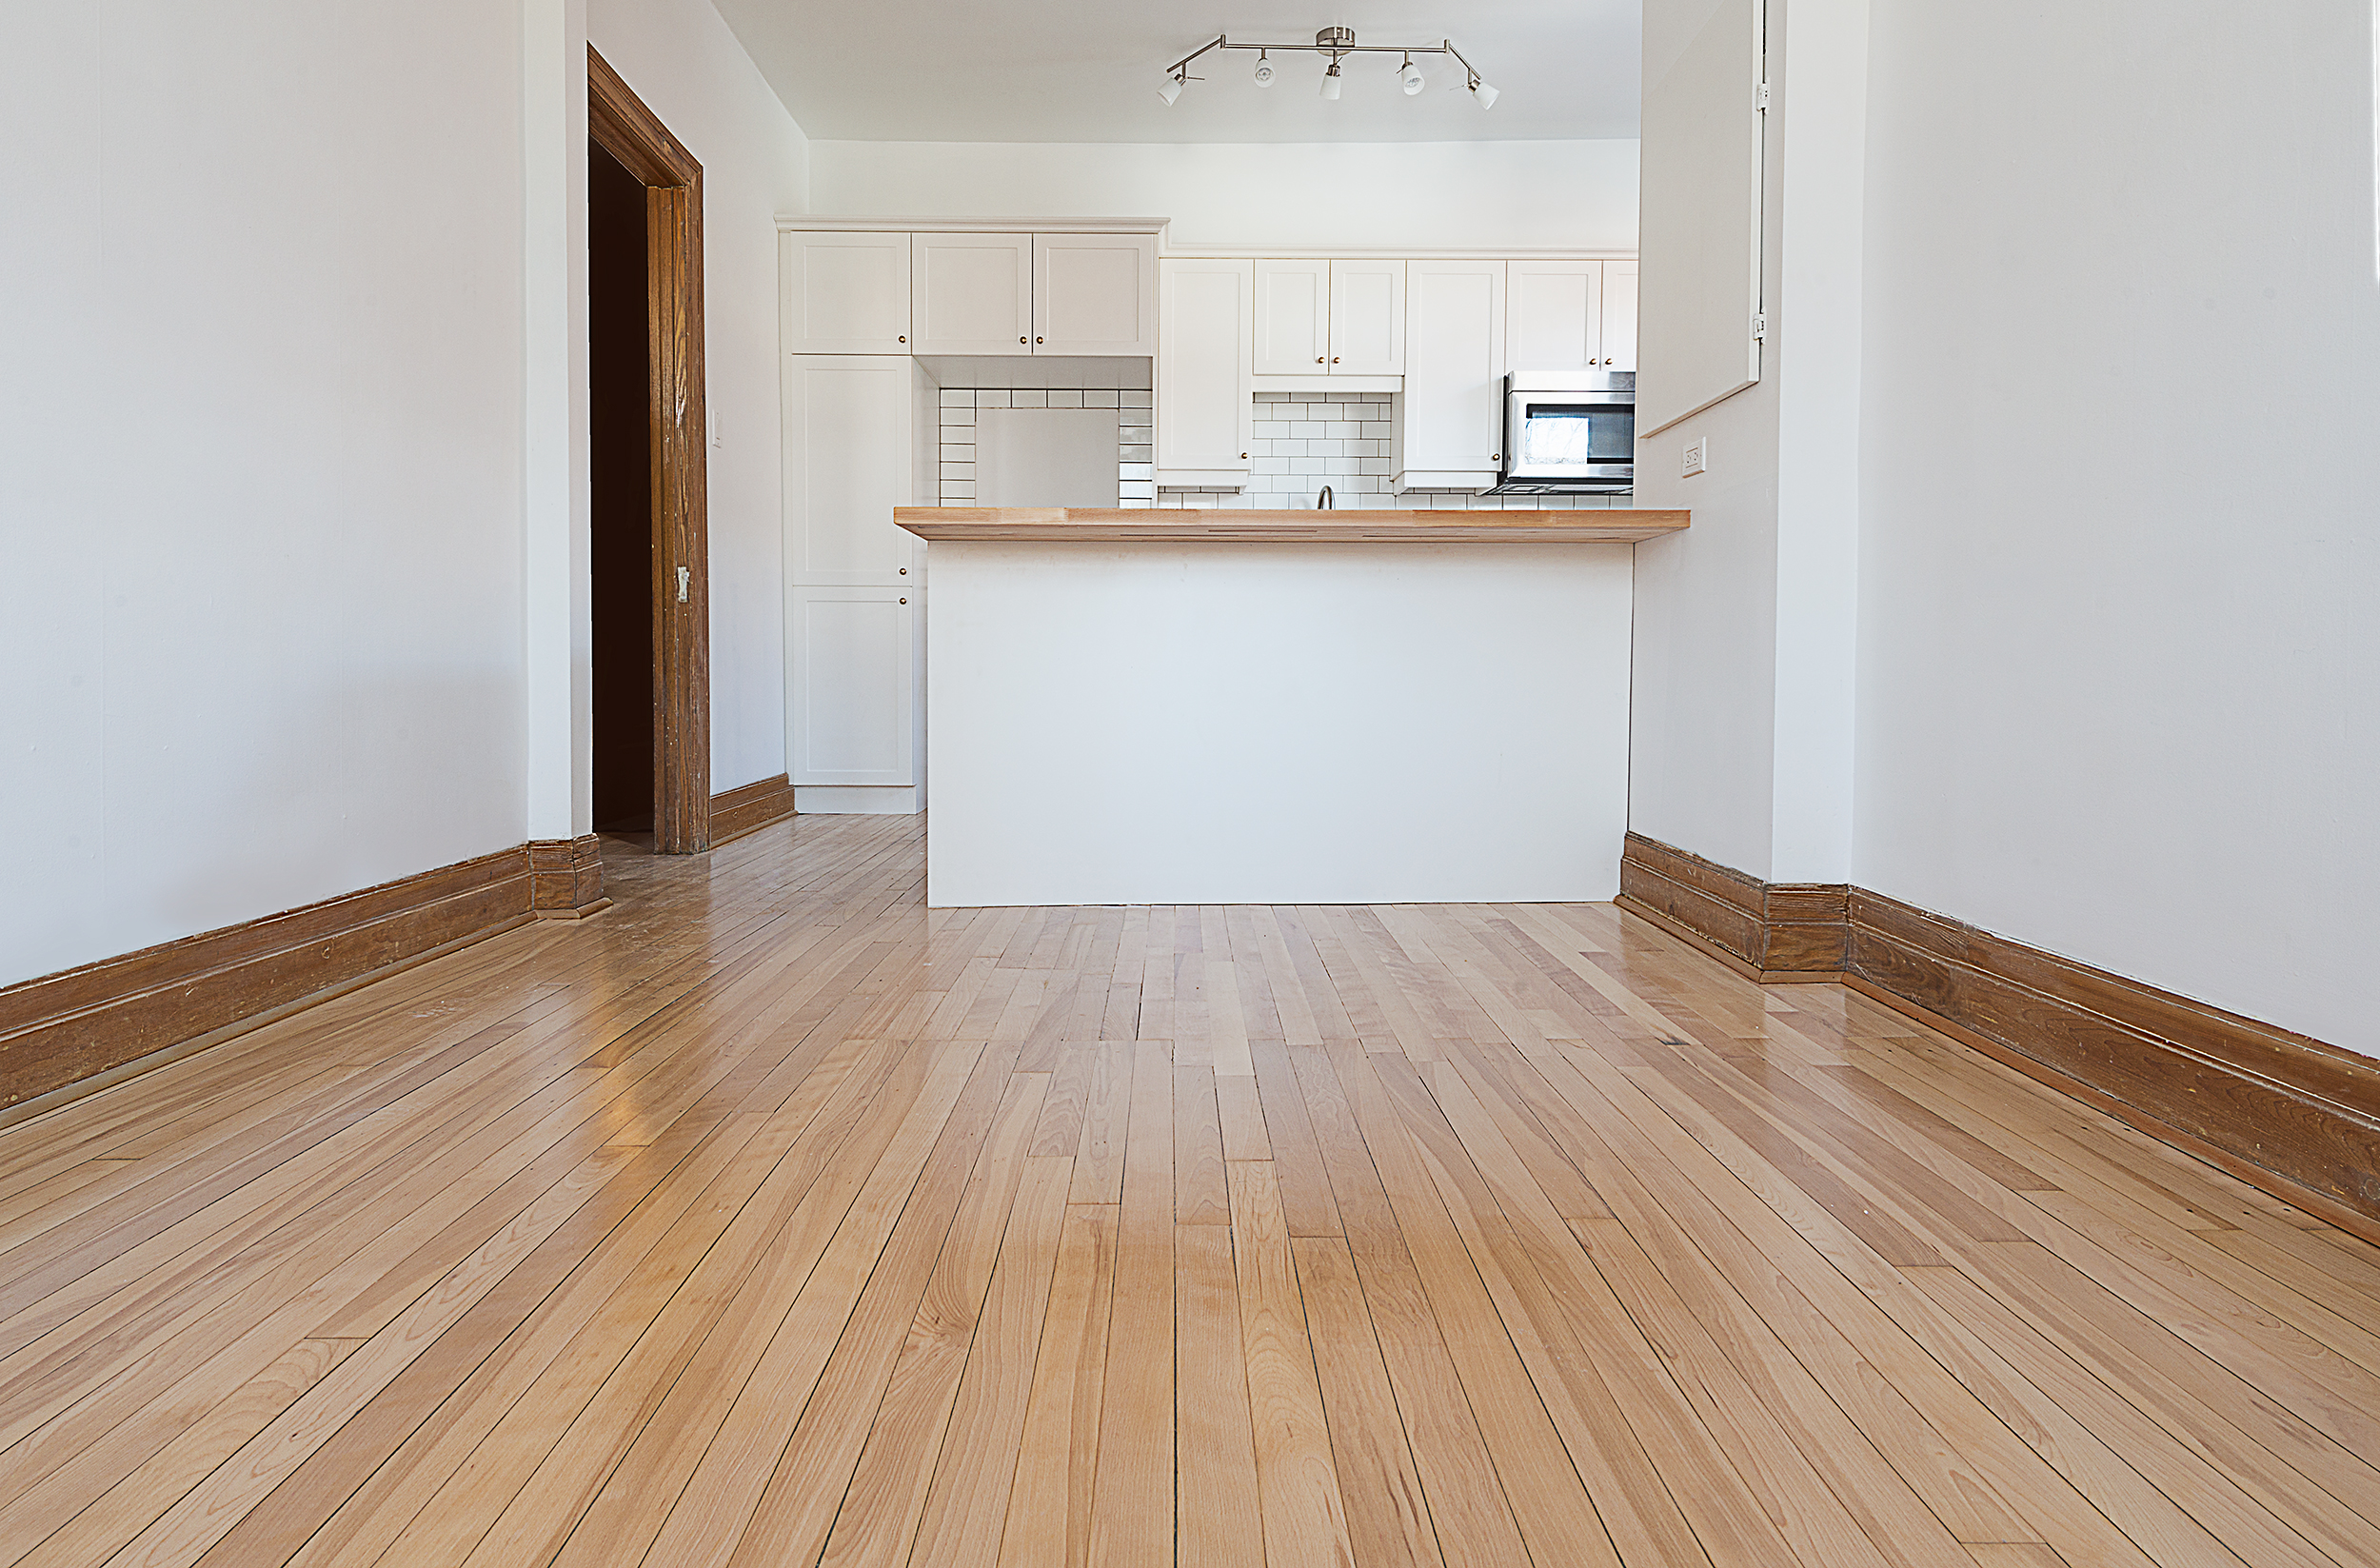 renovation projects flooring projects kitchen renovation projects